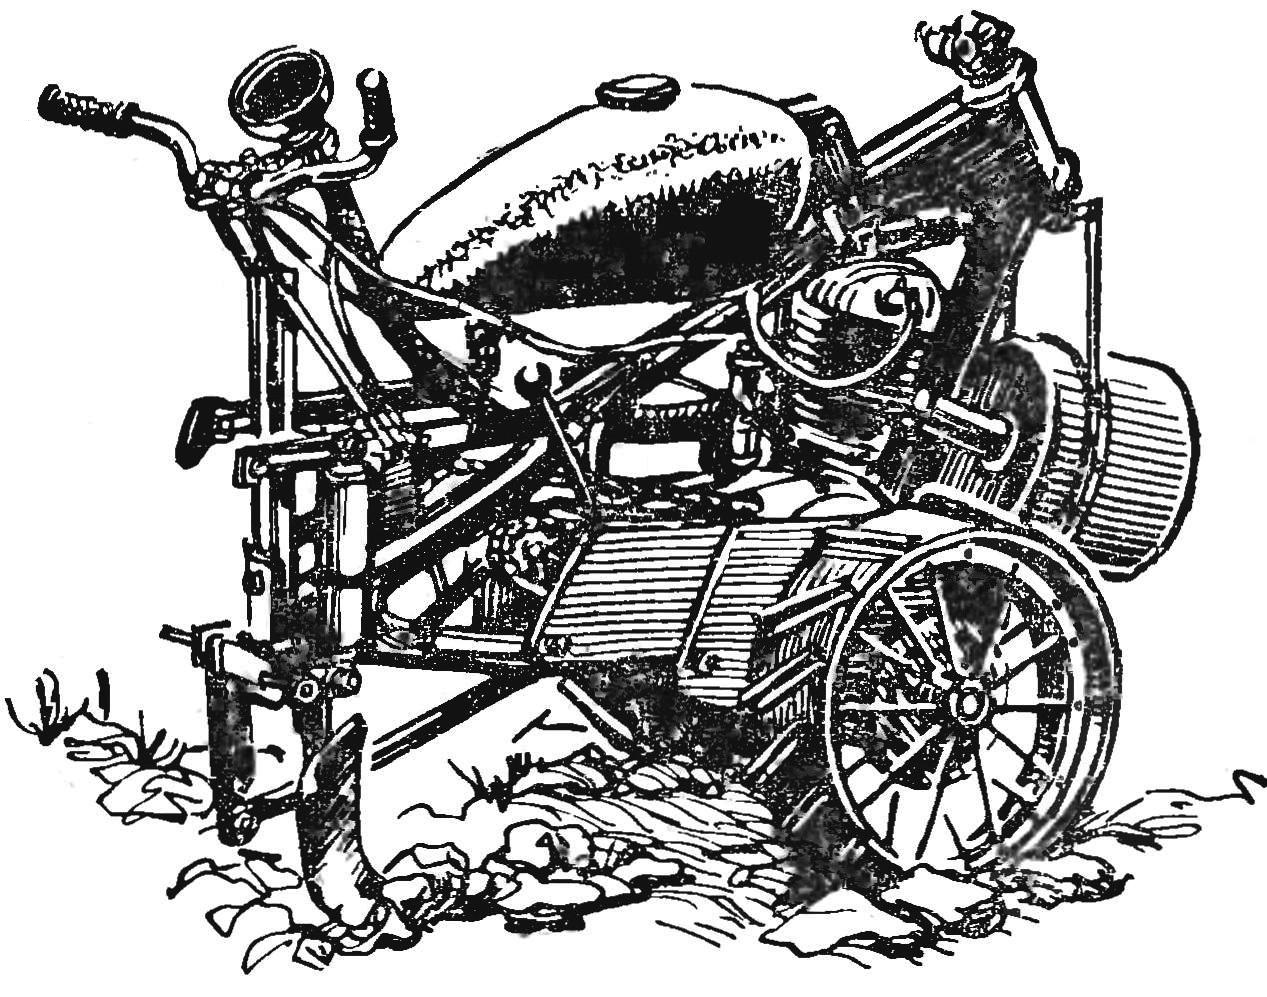 Fig. 1. Tractor.